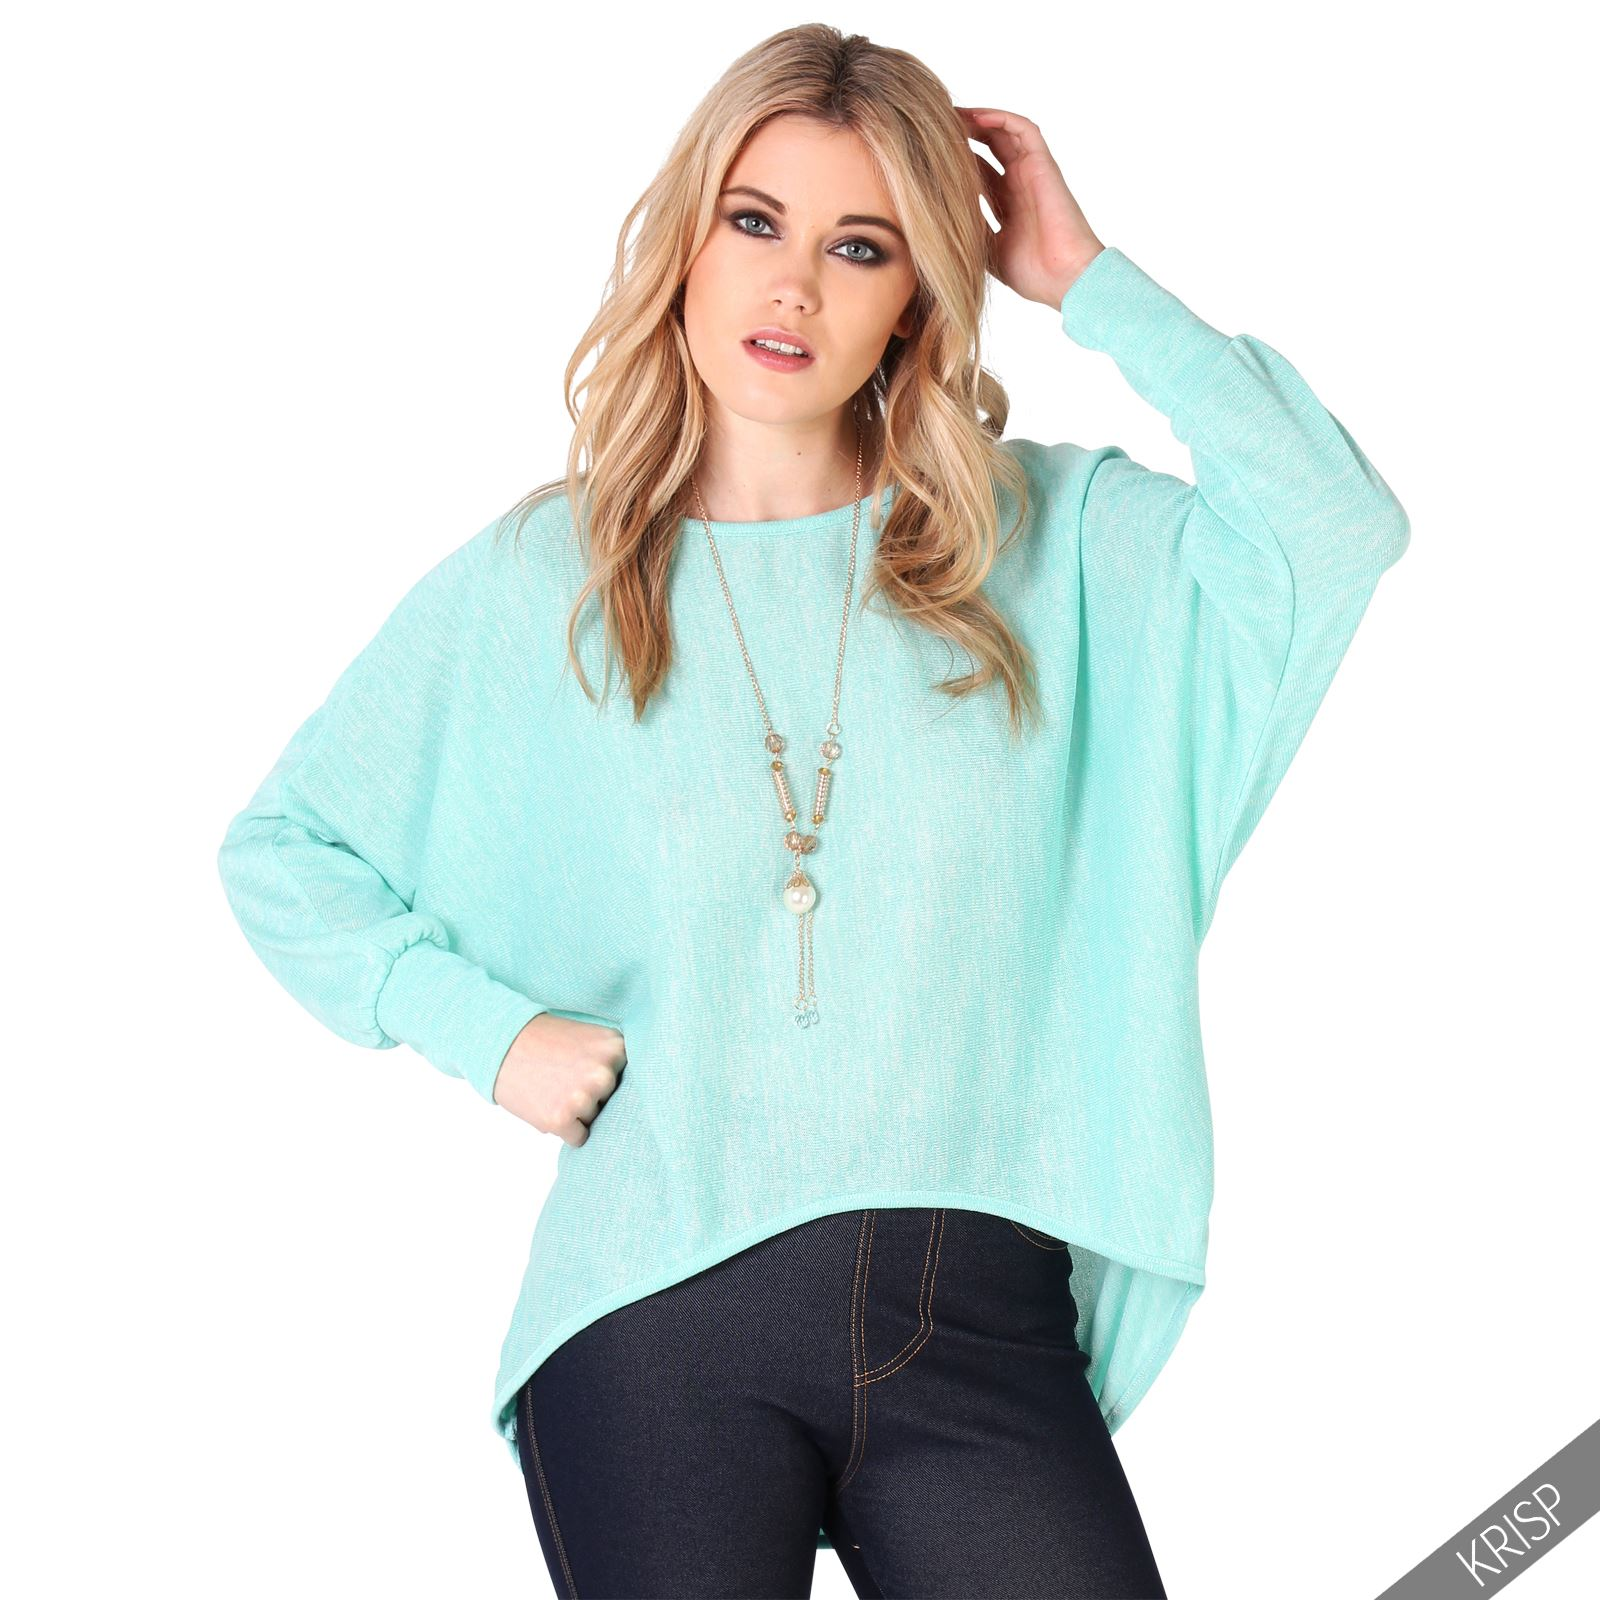 Great tops for both work and weekends, easy to match with stylish skirts or casual jeans. We have tops and vests in every style.